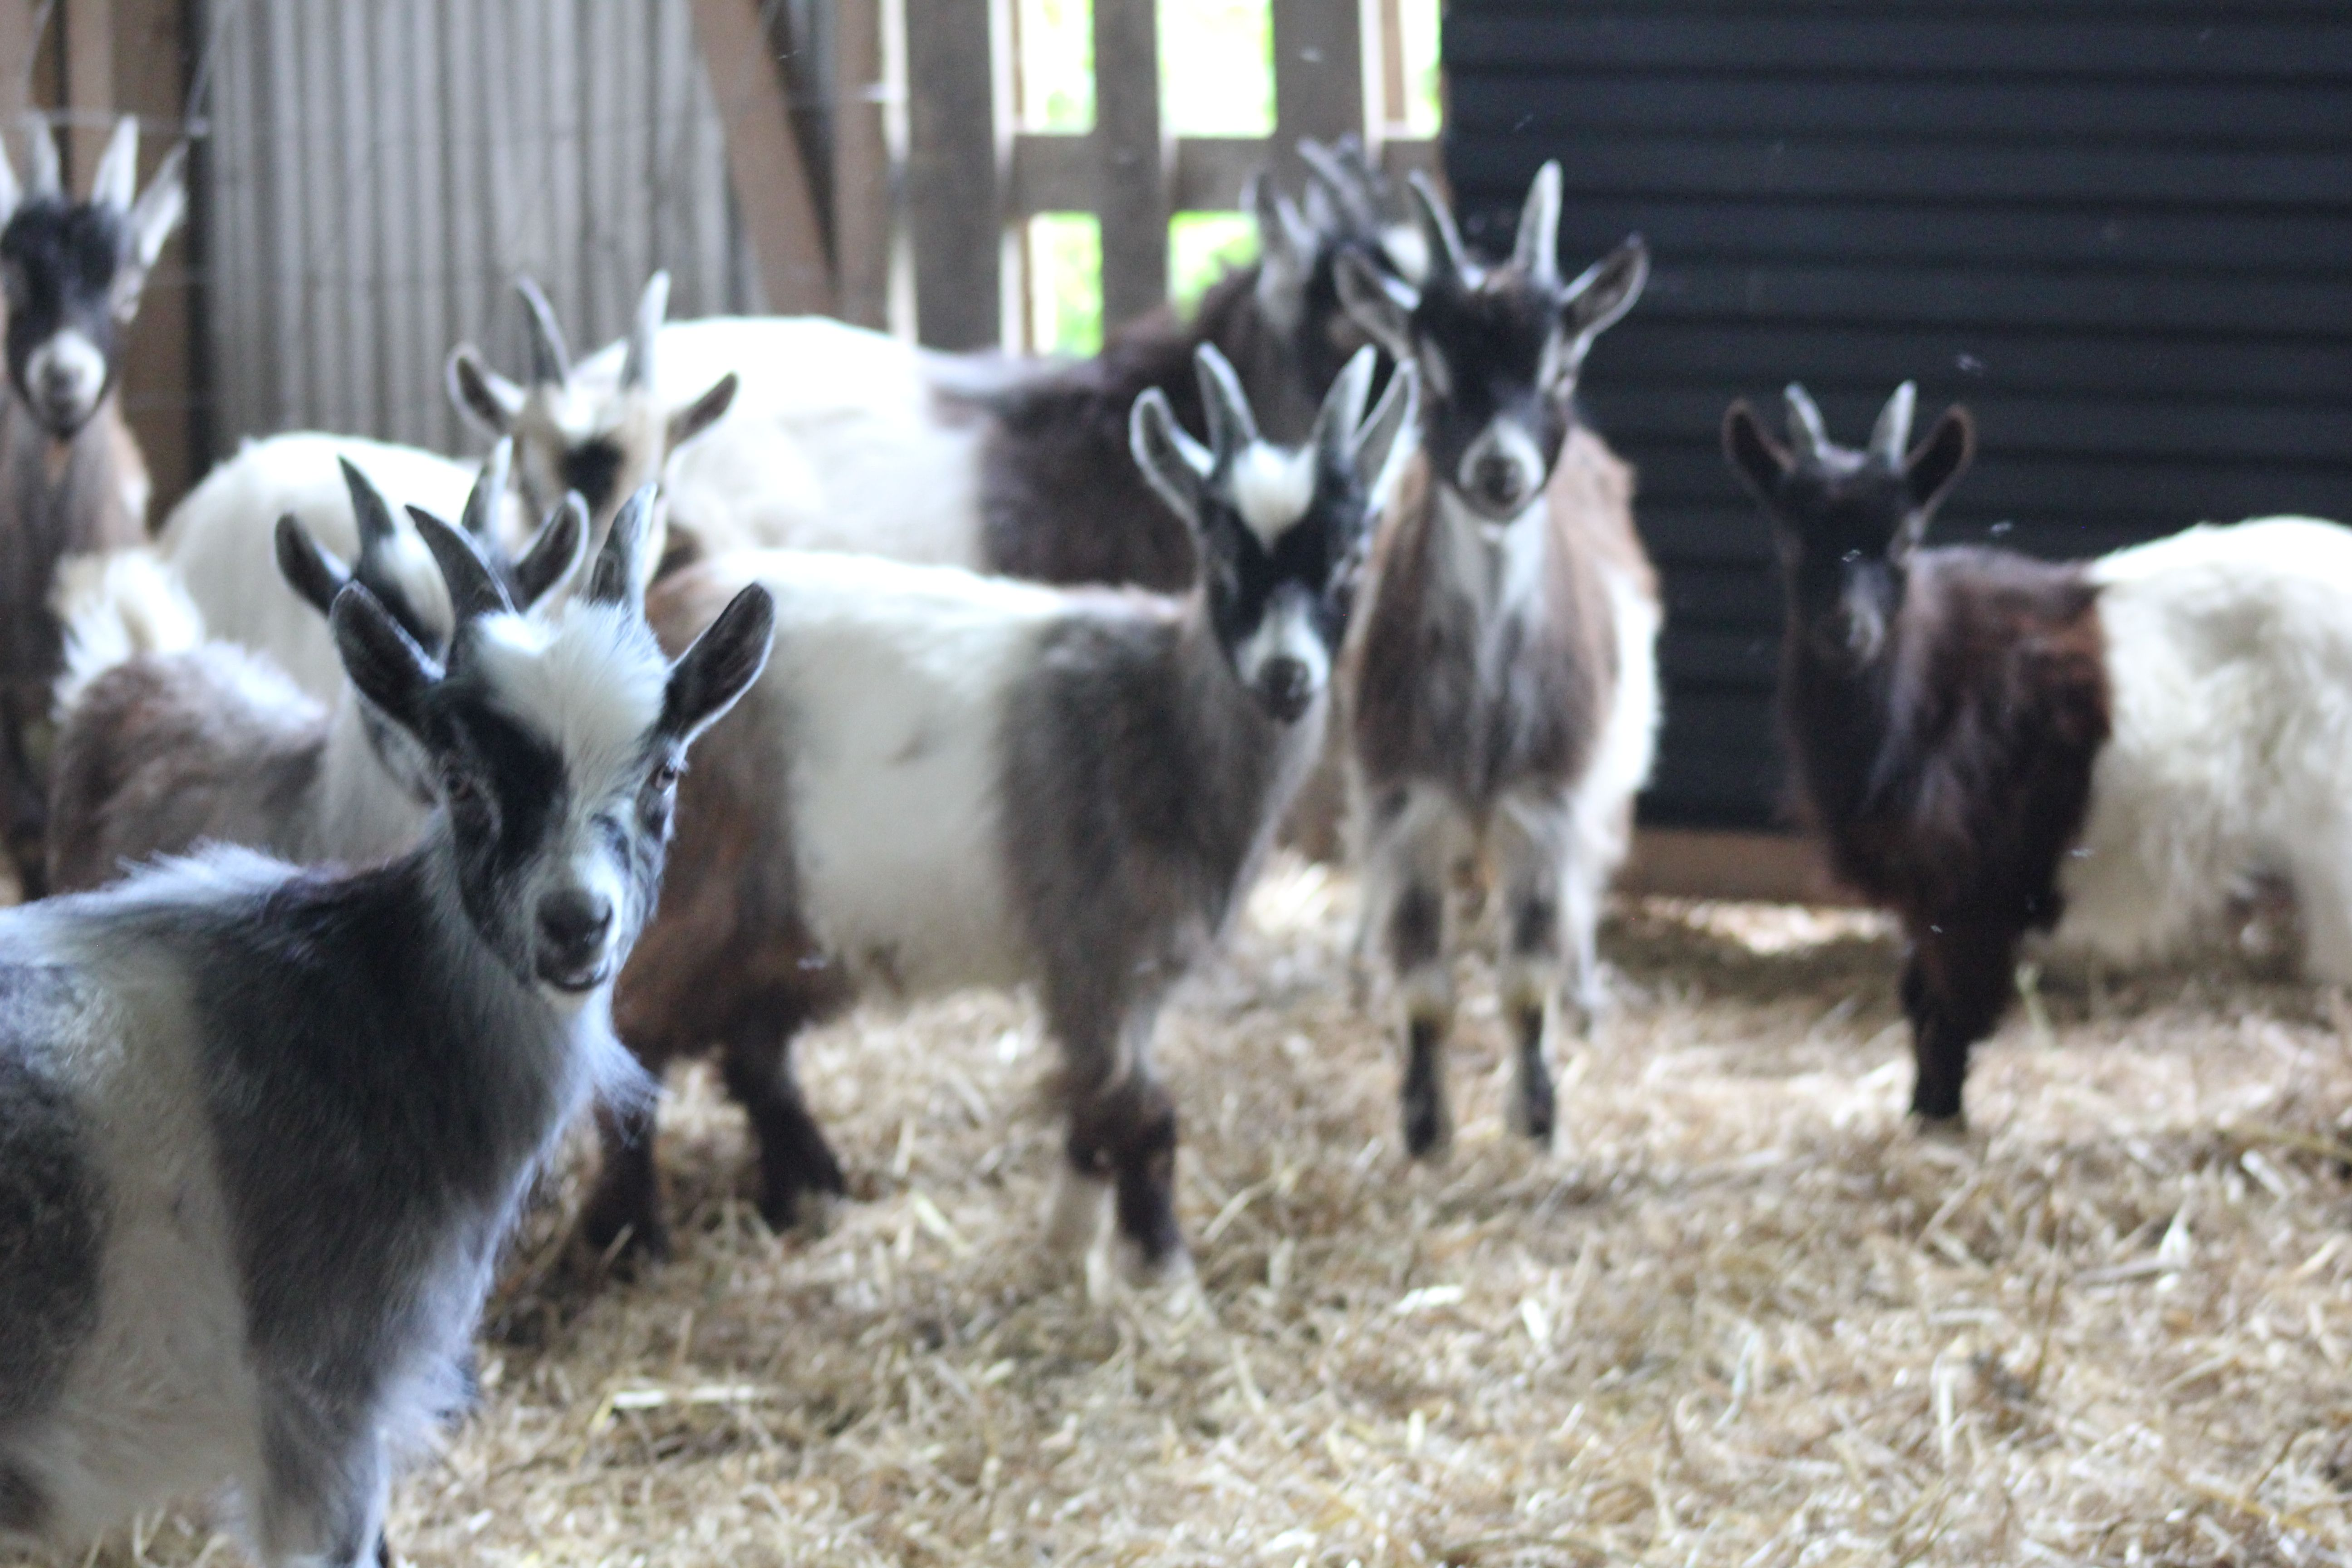 Goats! At Hagelstad Goat Dairy Farm in Öland, Sweden